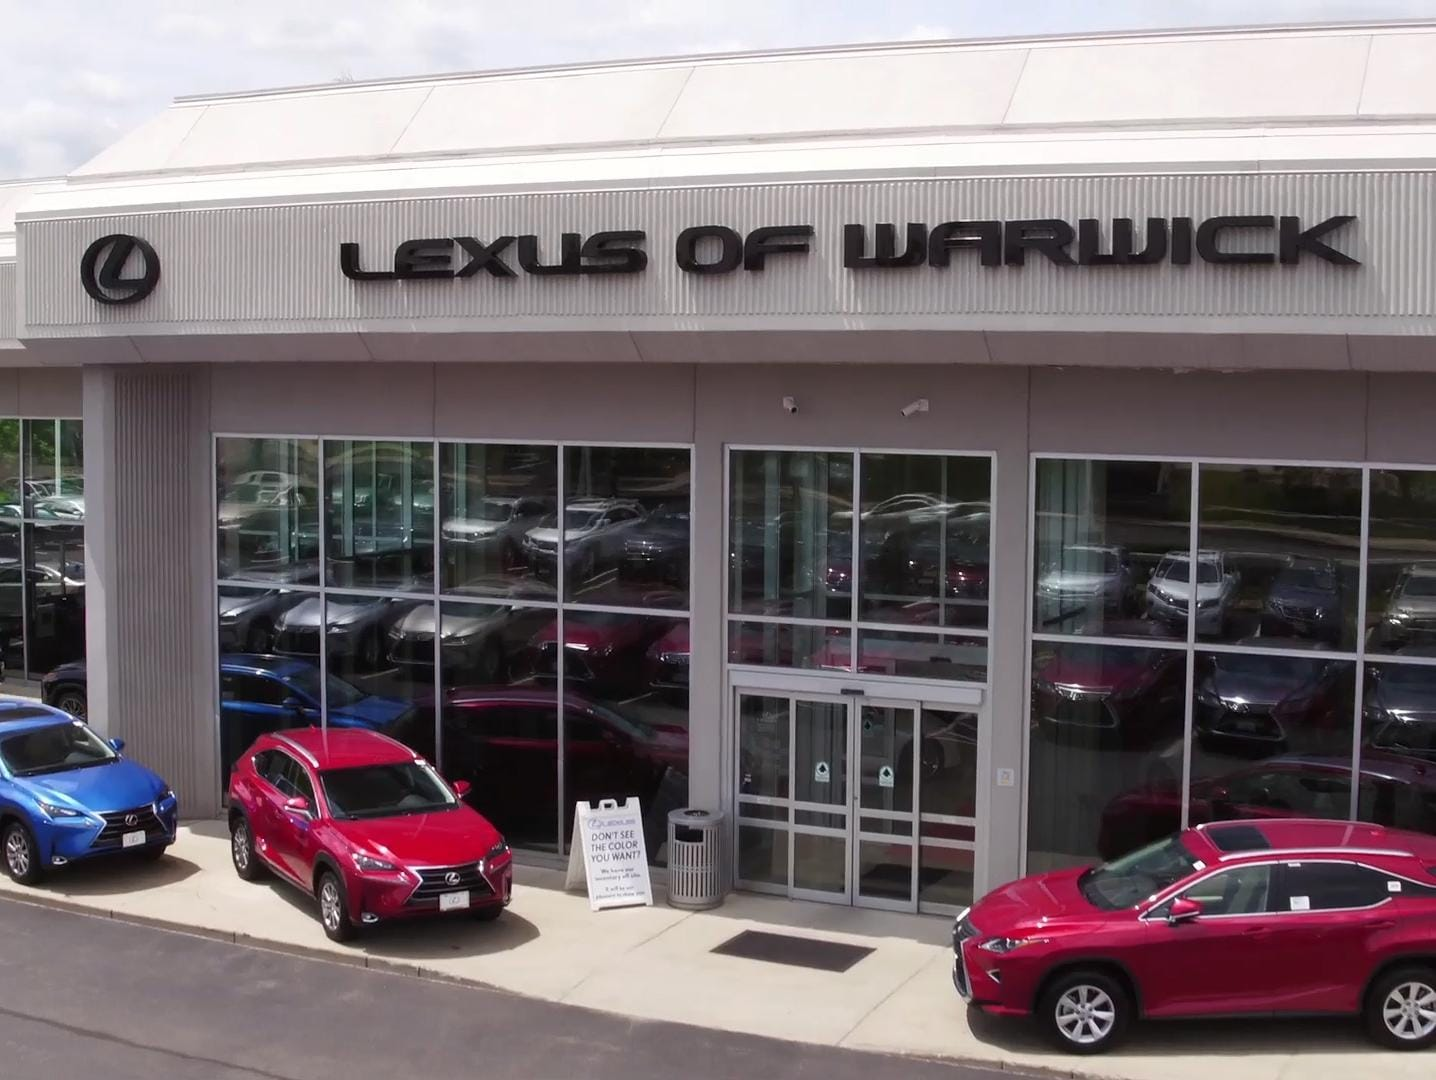 lexus of warwick small image.jpg